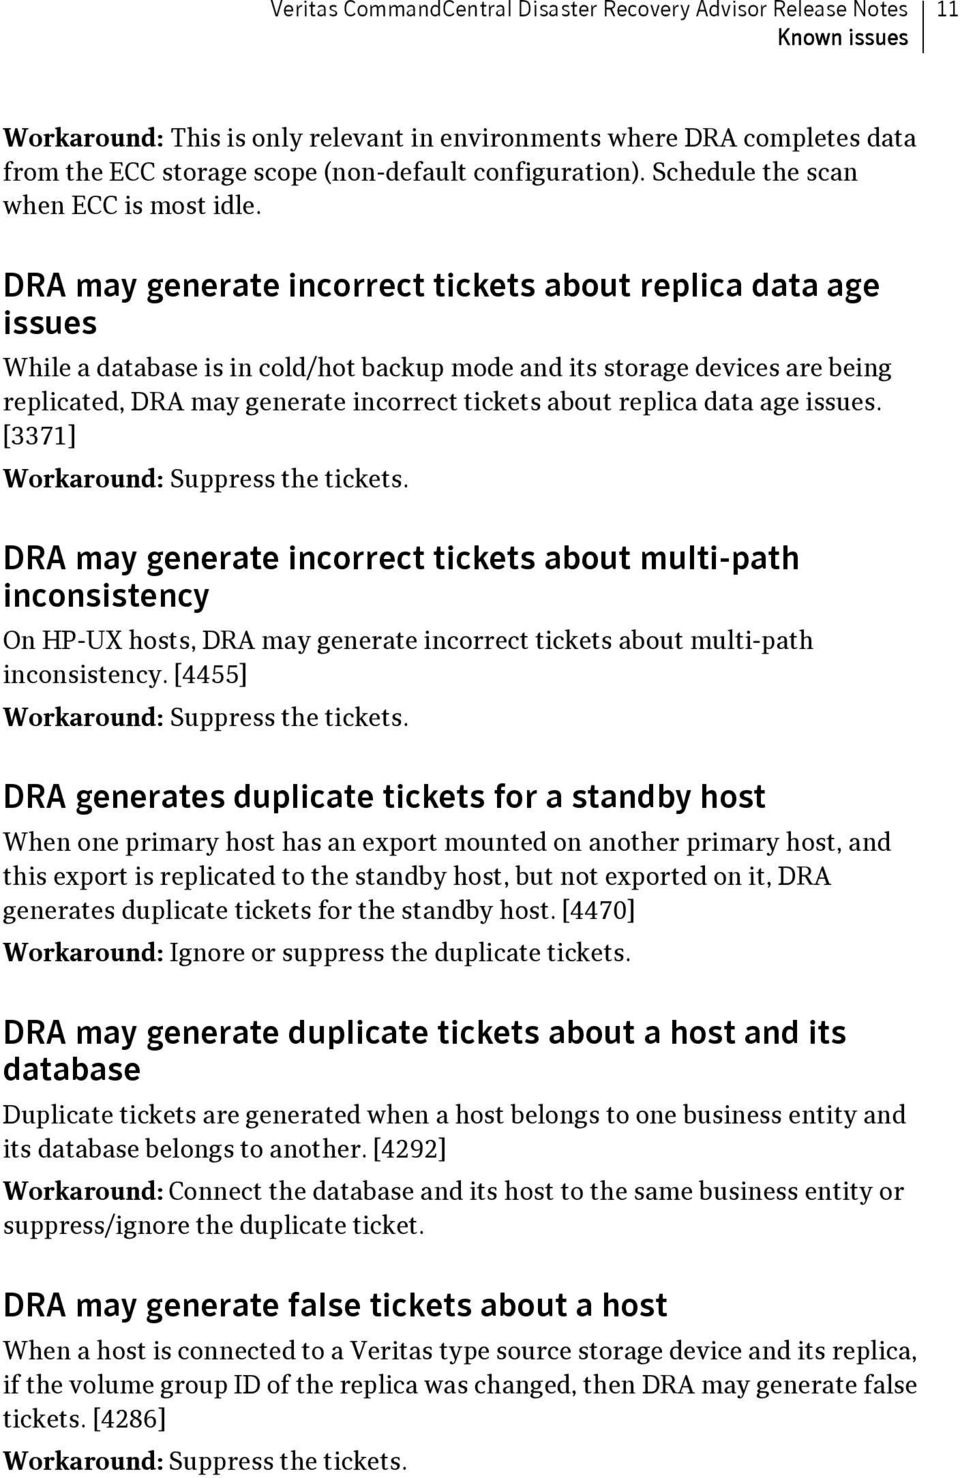 DRA may generate incorrect tickets about replica data age issues While a database is in cold/hot backup mode and its storage devices are being replicated, DRA may generate incorrect tickets about